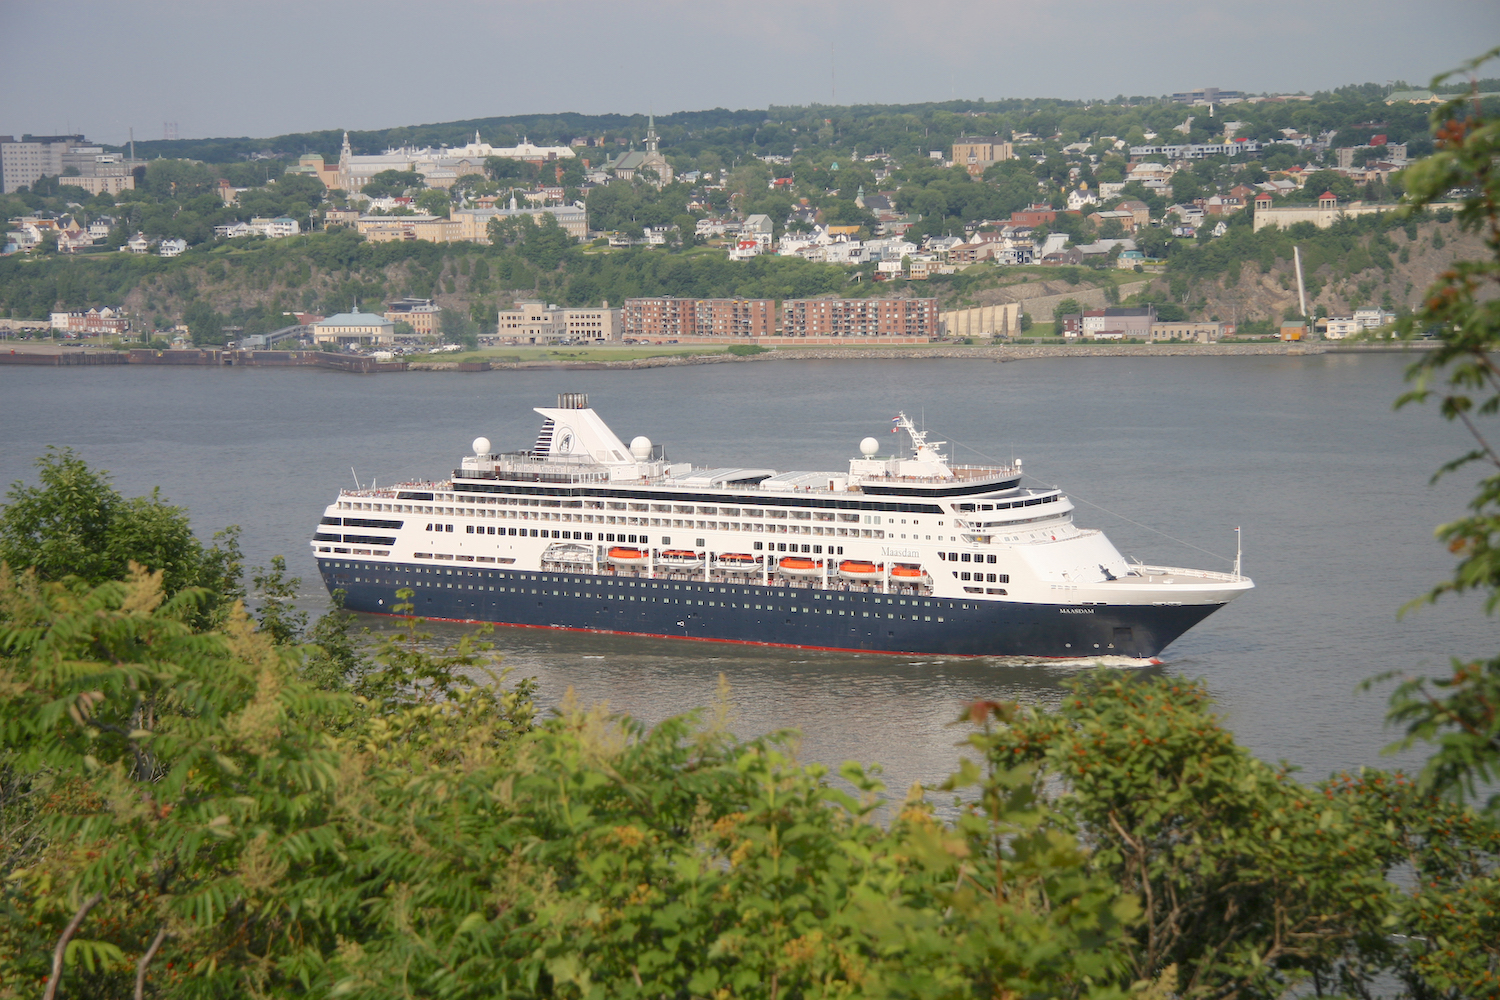 MS Maasdam in Quebec City, Canada